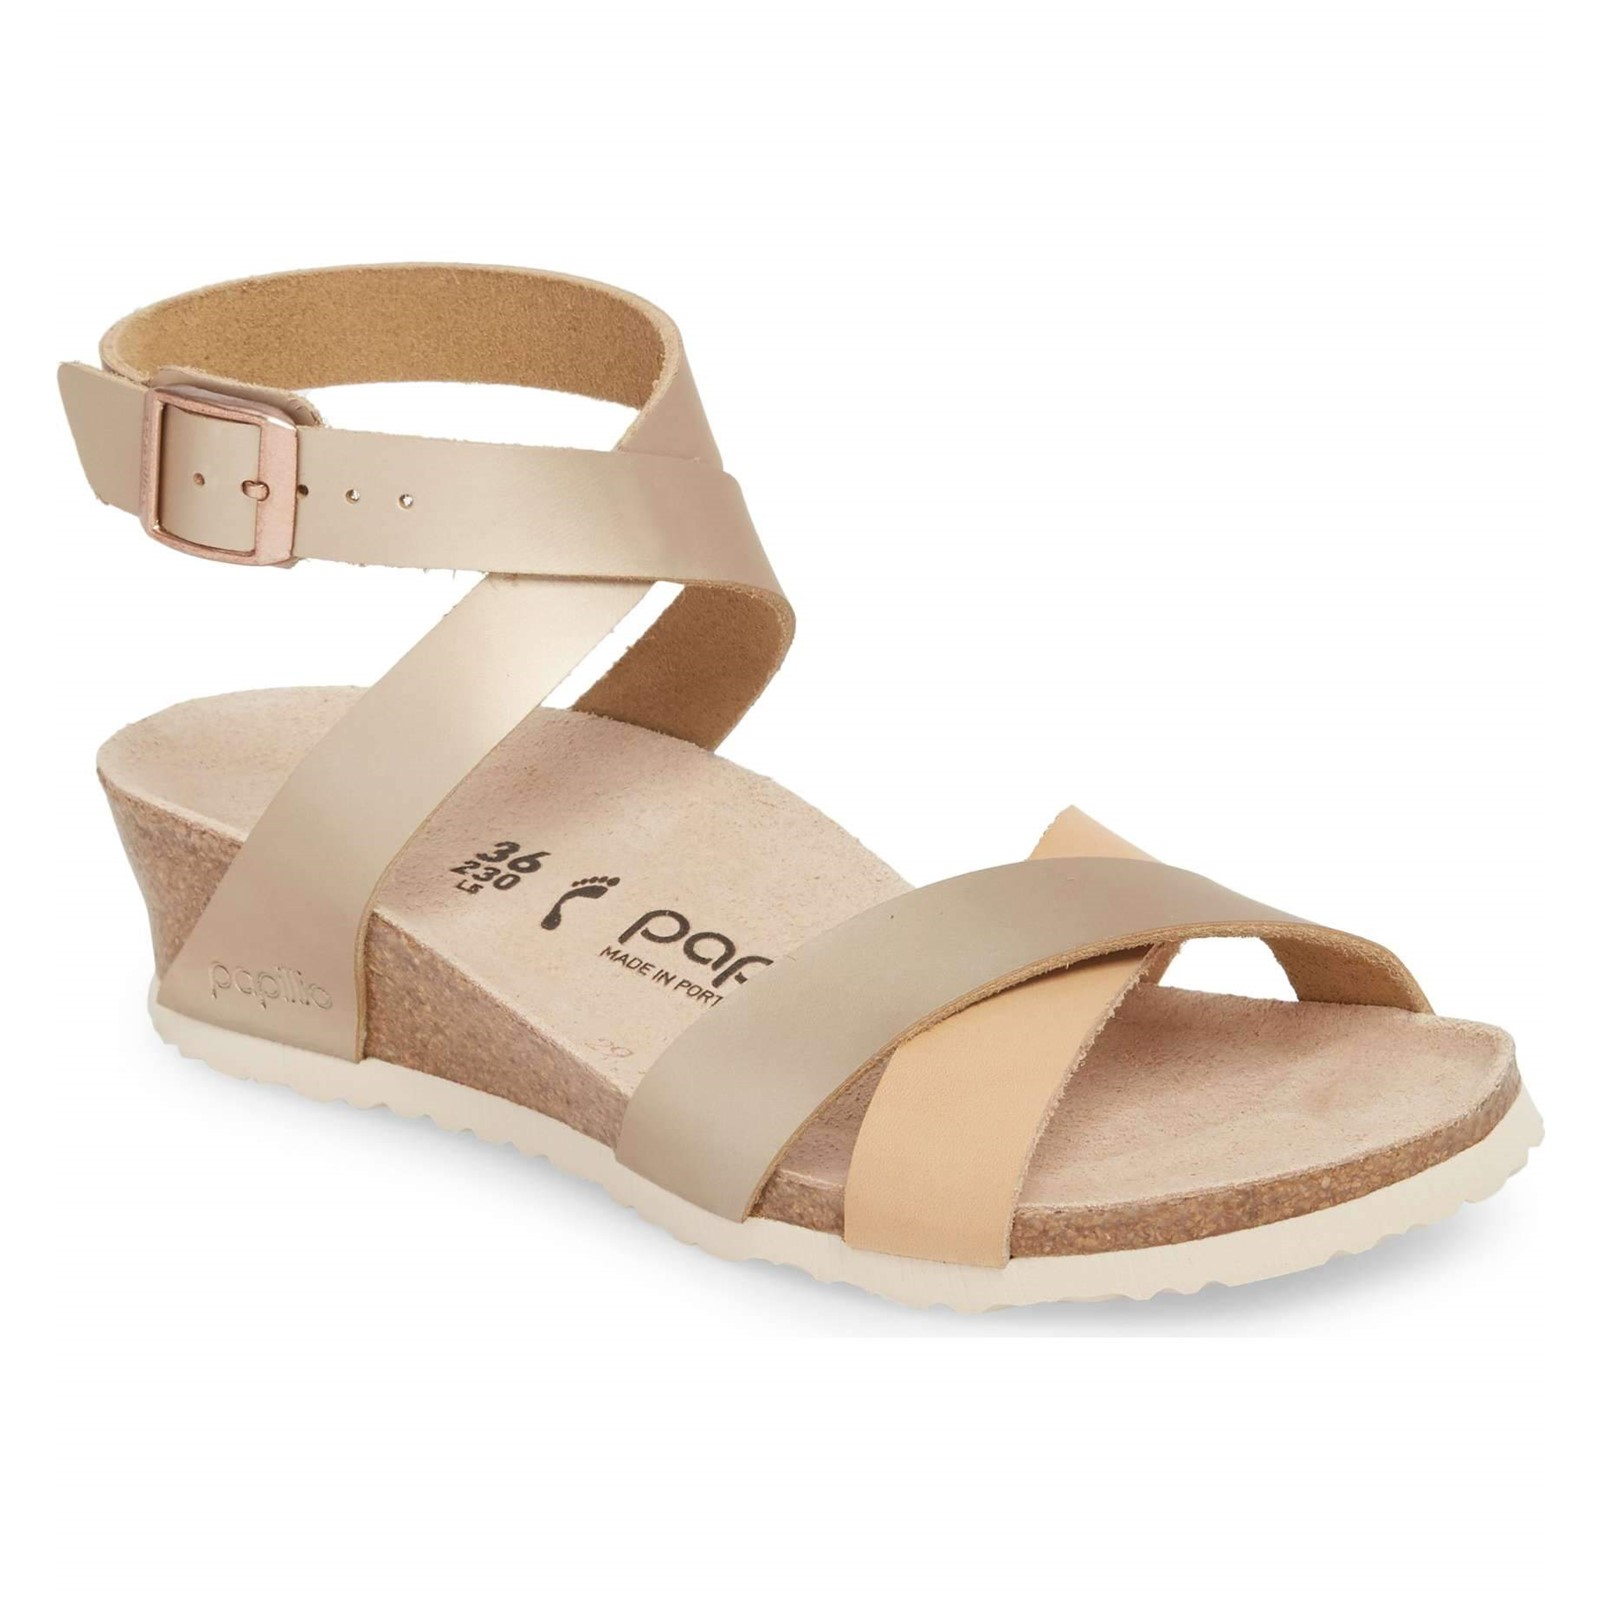 Women's Birkenstock, Lola Low Heel Wedge Sandals